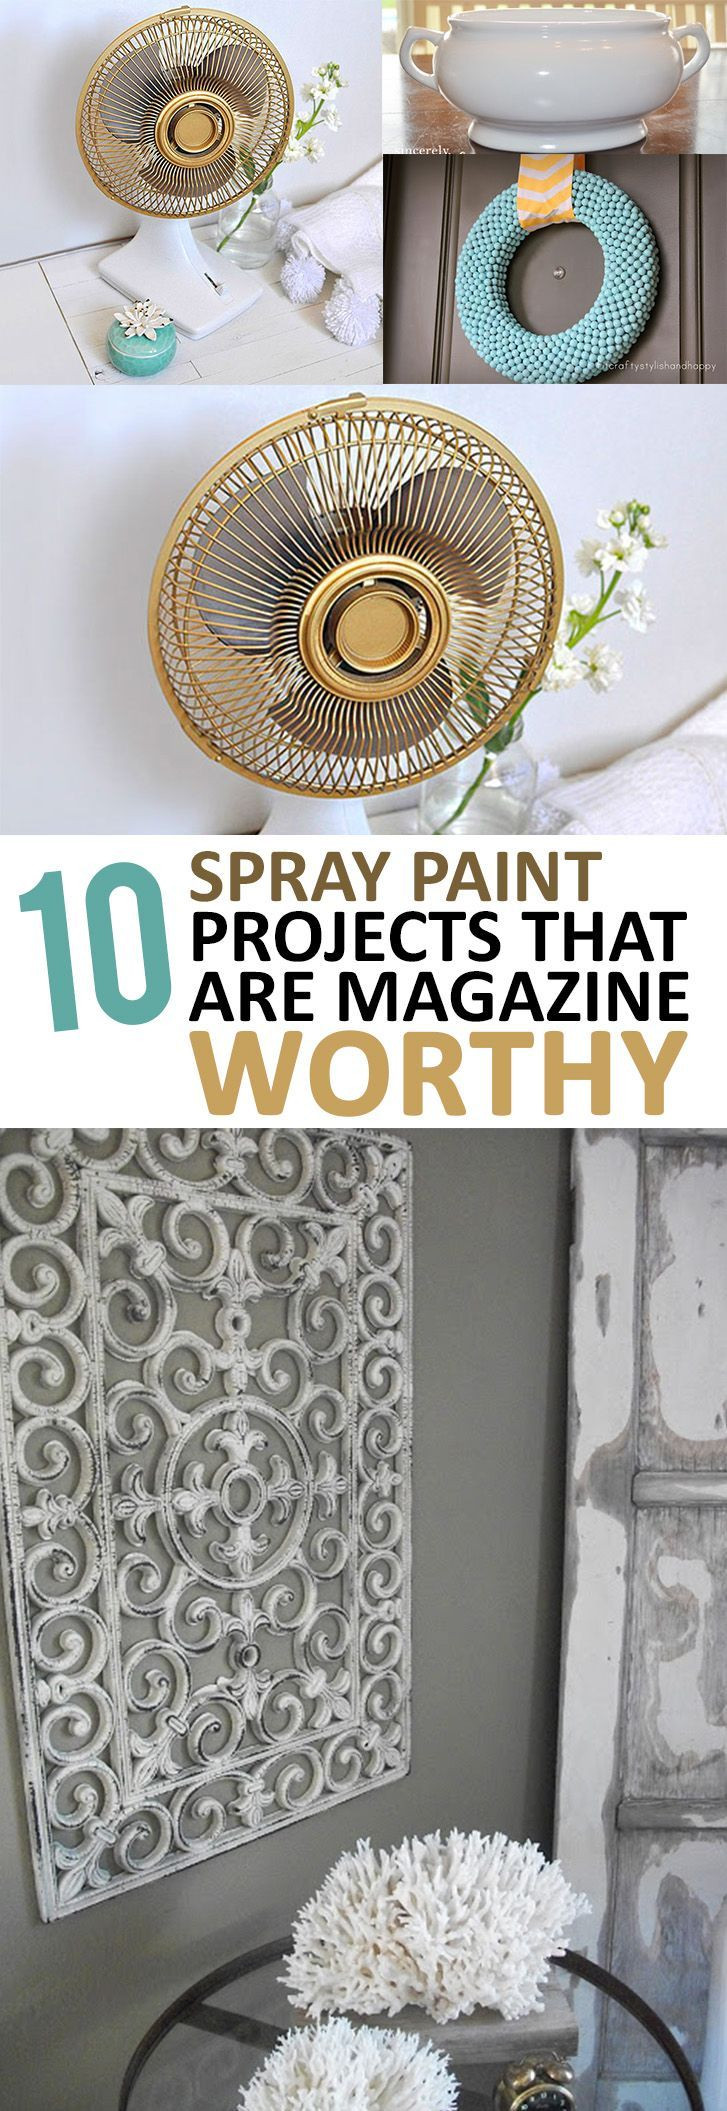 Best ideas about DIY House Painting . Save or Pin 17 Best ideas about Spray Paint Projects on Pinterest Now.